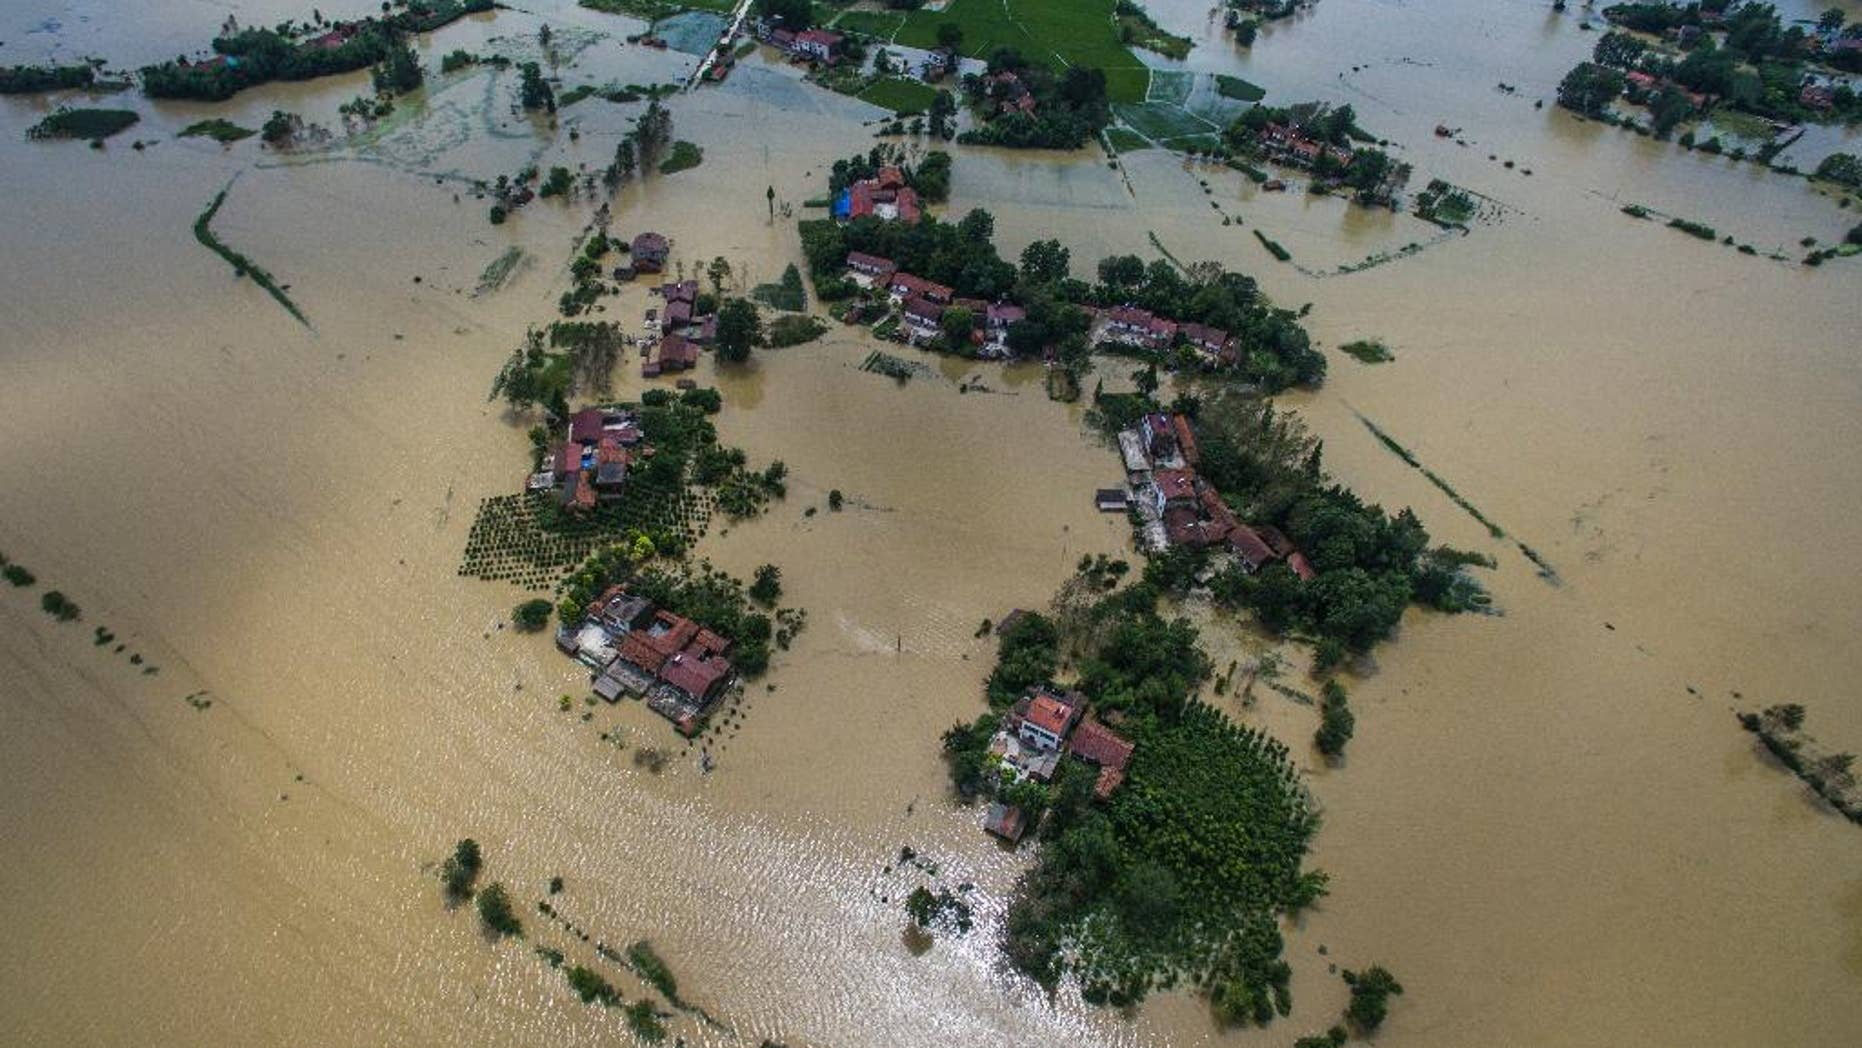 This Wednesday, July, 20, 2016 photo released by Xinhua News Agency, shows village houses and field partially submerged by flood waters in Gaoyang Town, Shayang County, central China's Hubei Province. China says dozens of people have died or gone missing since Monday in massive floods across the country's north. (Xiao Yijiu/Xinhua via AP)